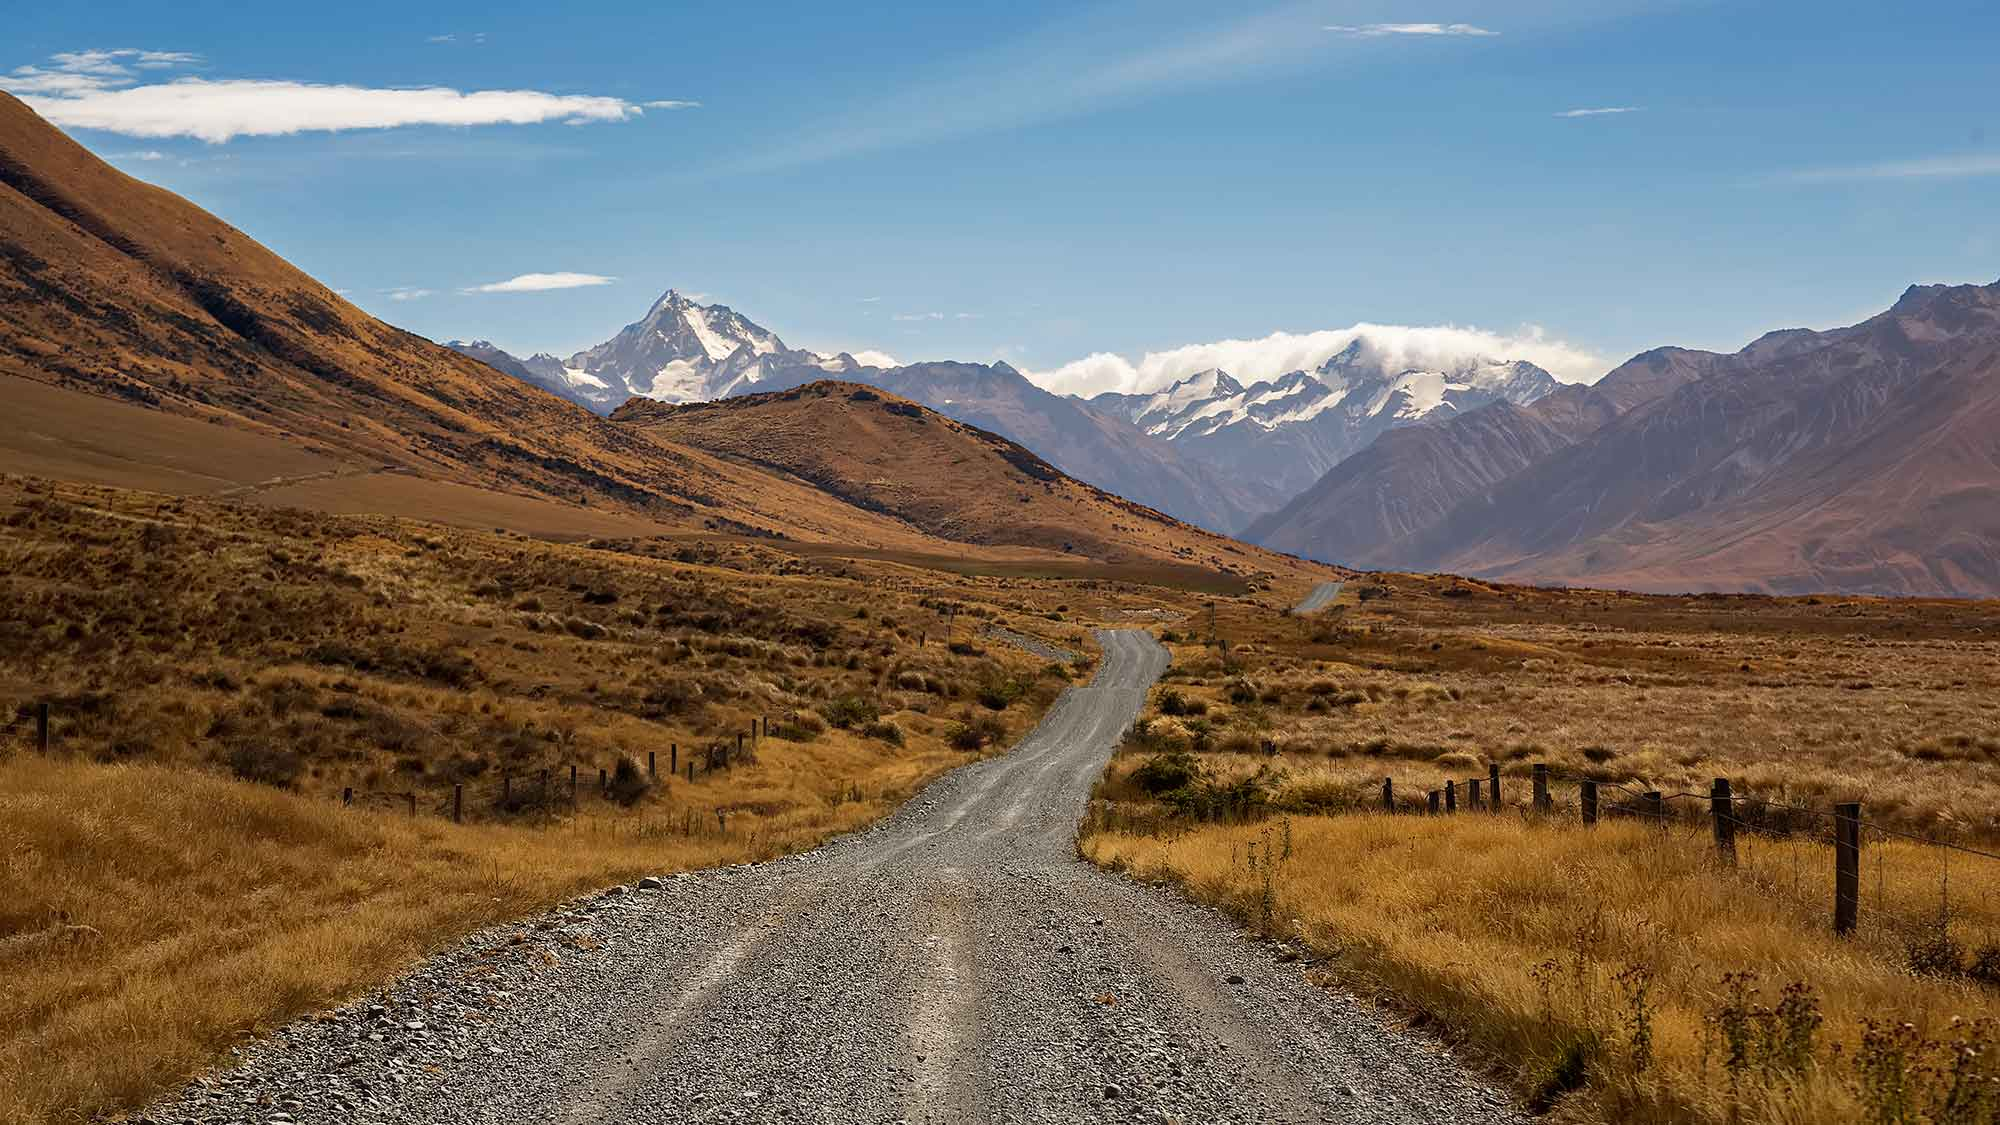 landscape-mt-potts-harper-range-new-zealand-home-page